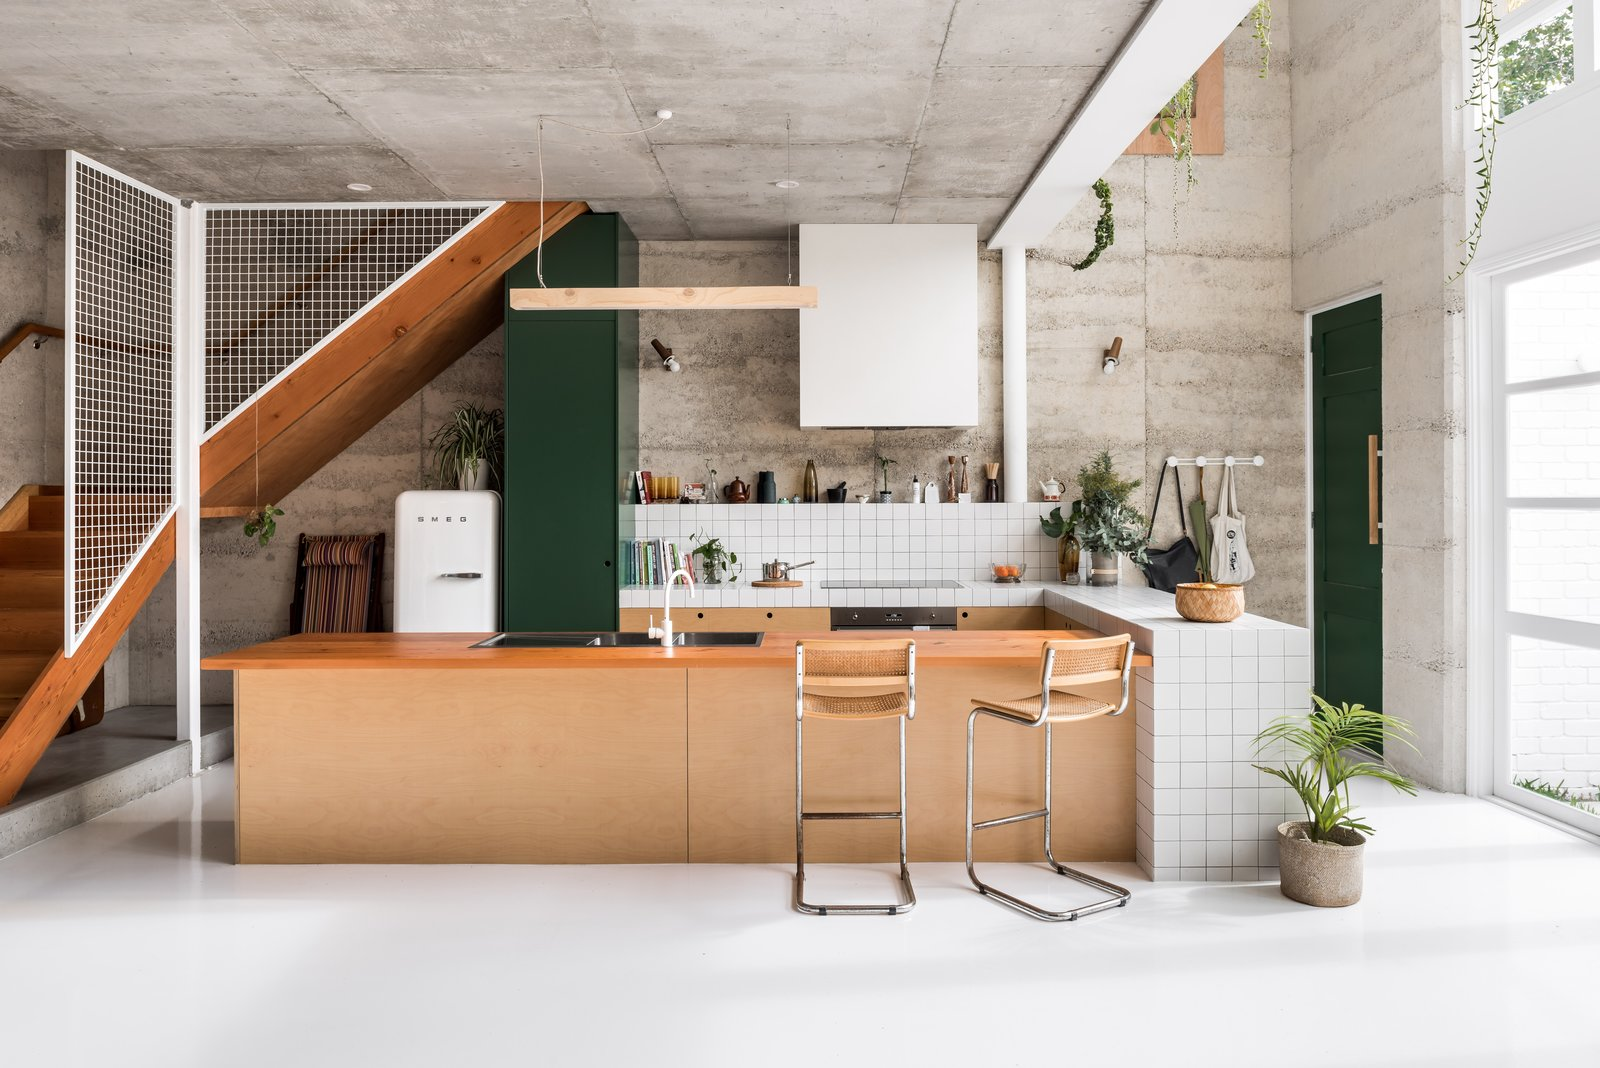 Photo 1 of 6 in Sixties Style Is Brought Back to Life in This Sustainable Kitchen